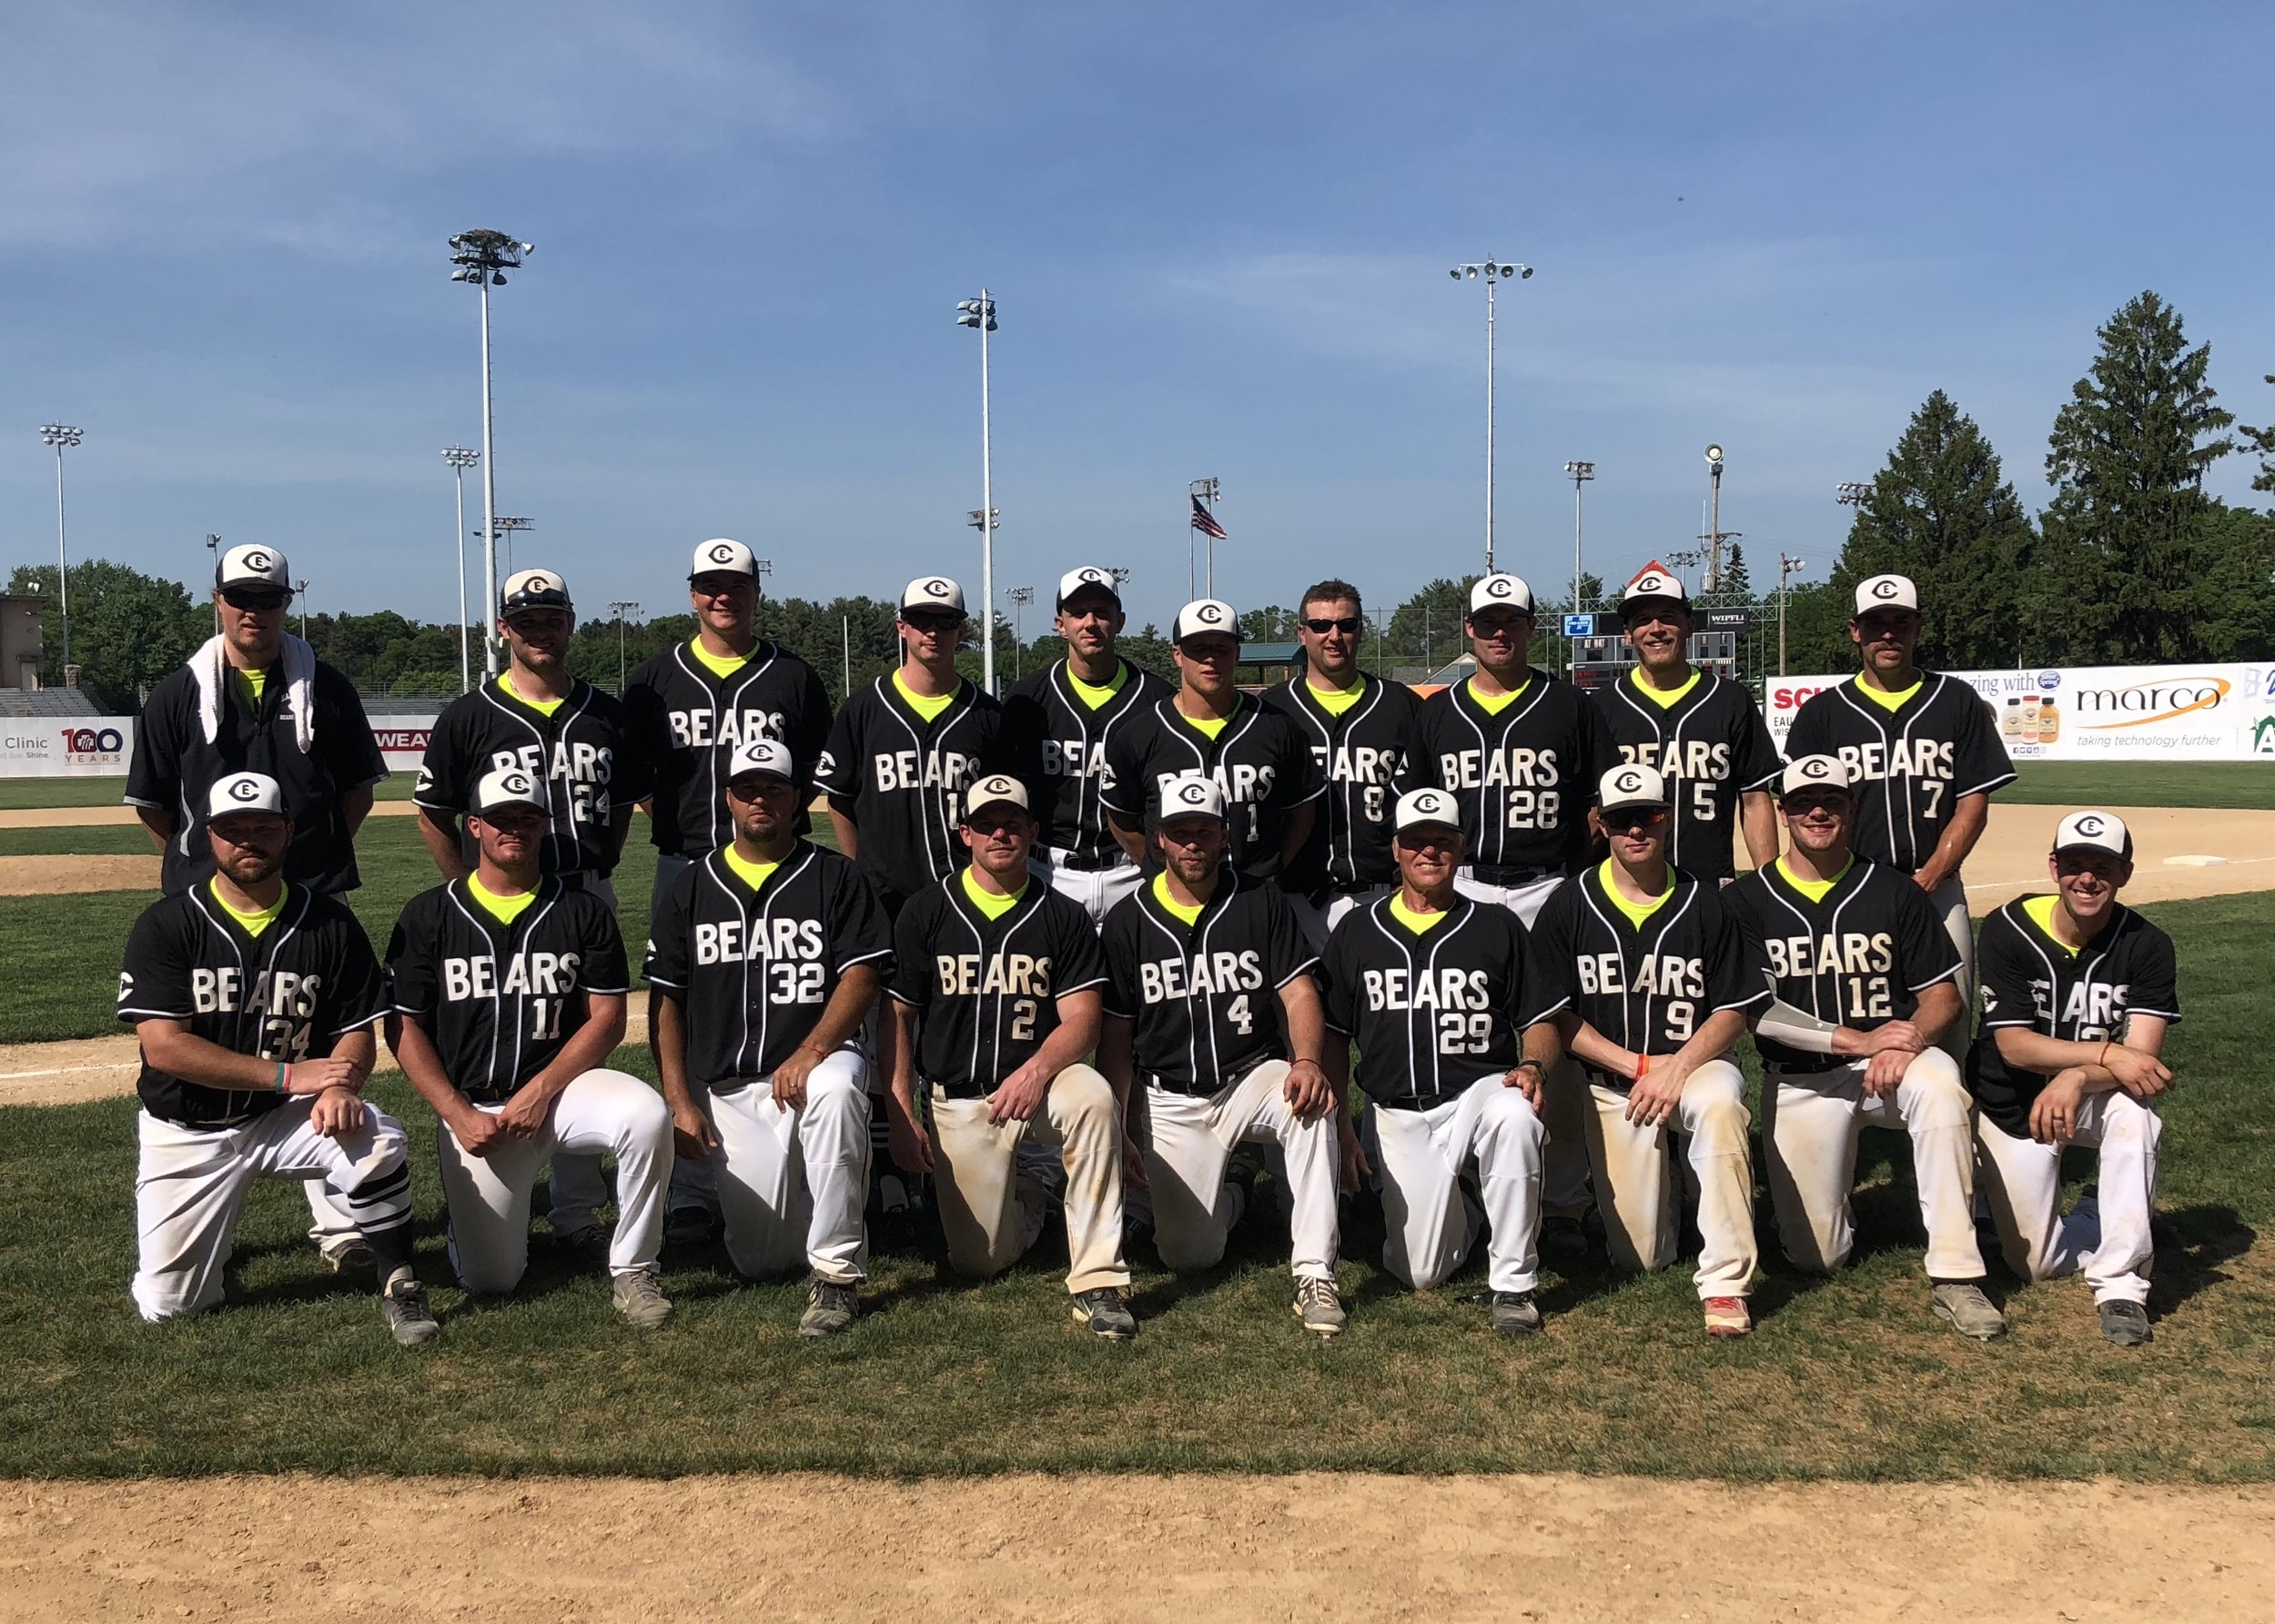 2018 Eau Claire Bears at the 1st Annual Billy Noss Memorial Day Game